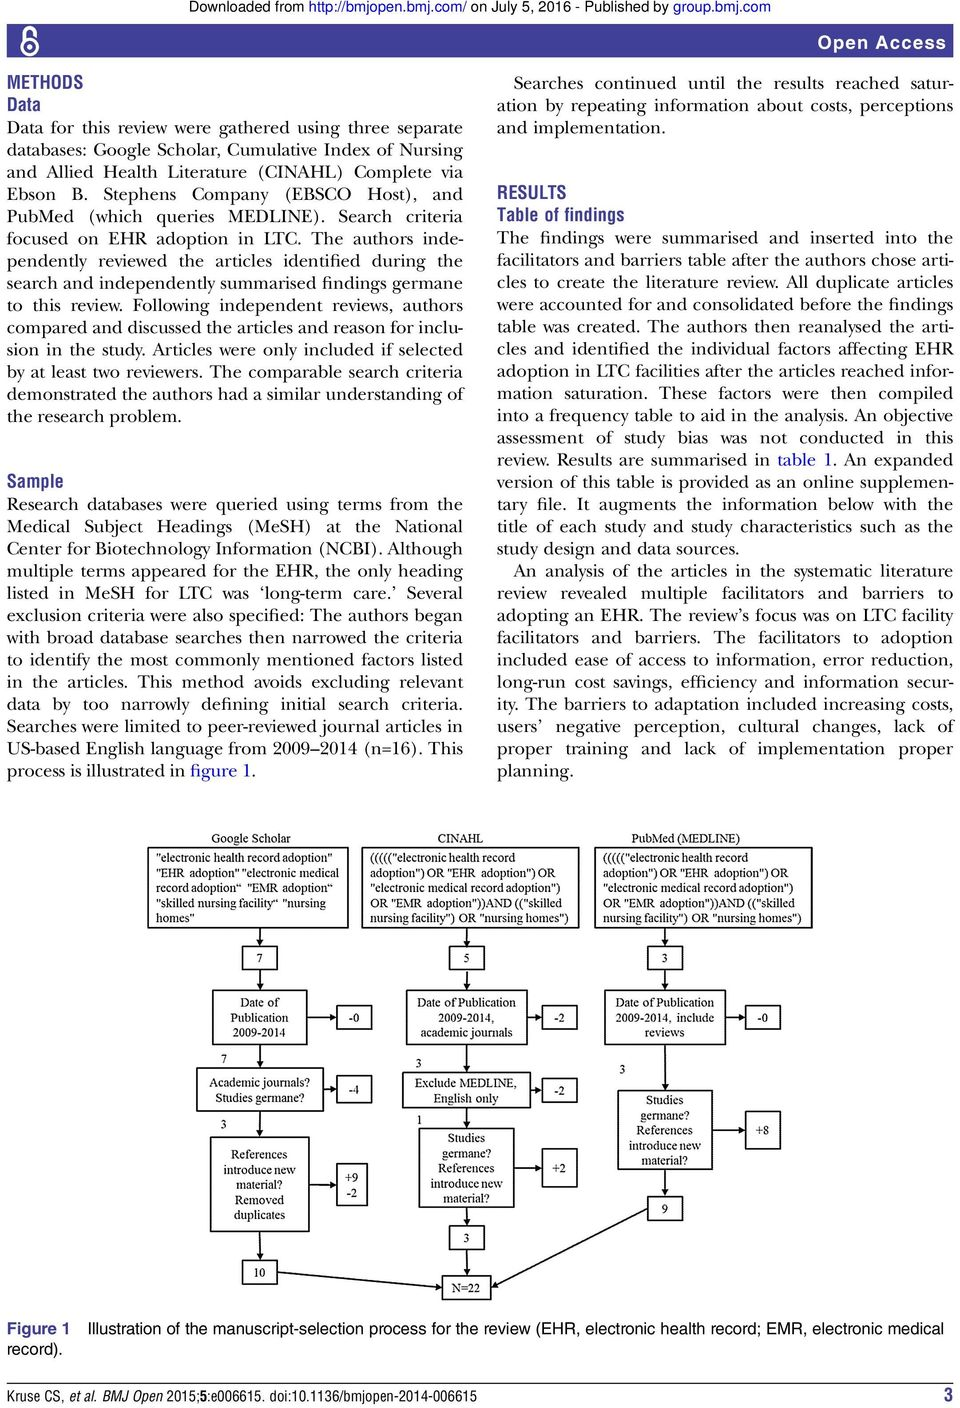 Implementing electronic health records in hospitals: a systematic literature review